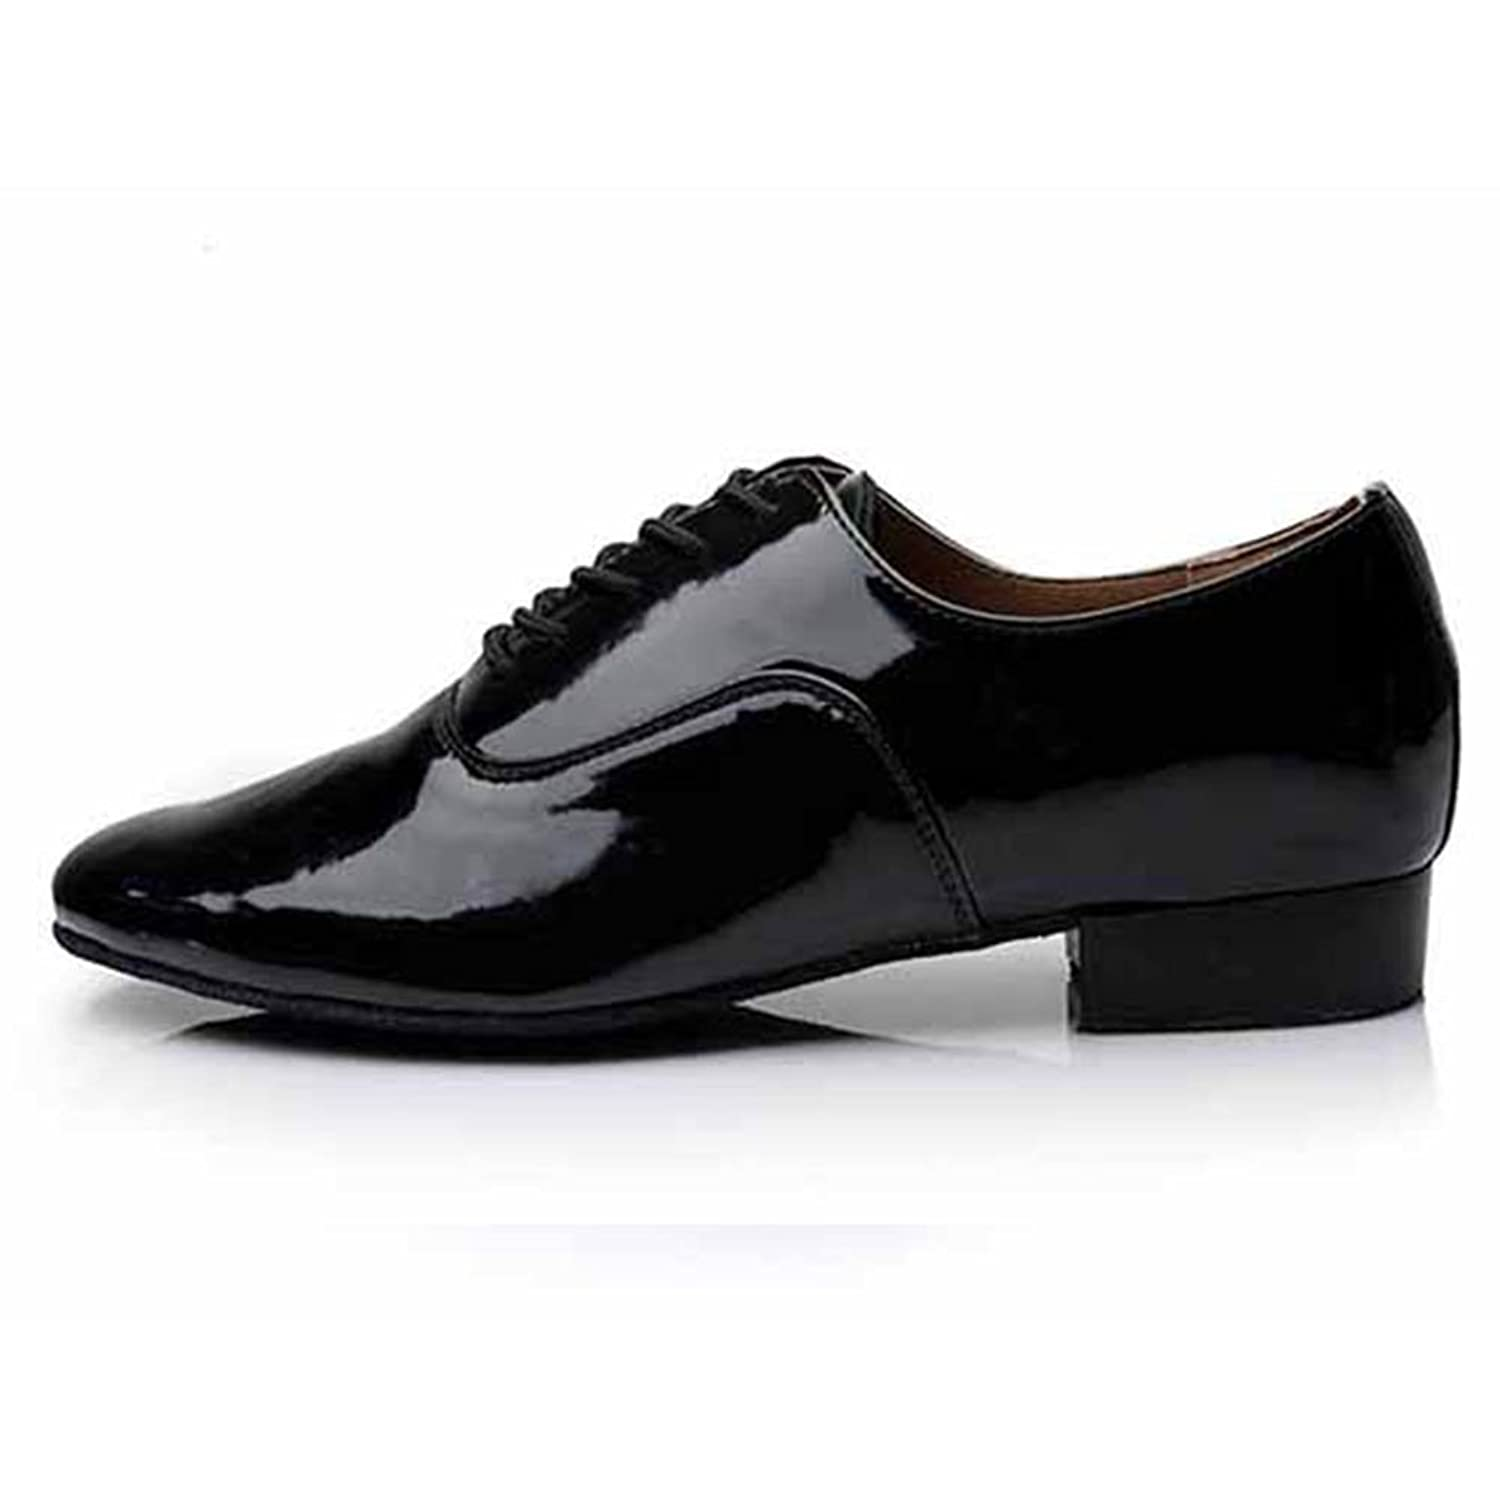 82587cfb700a Roymall Men's Latin Dance Shoes, Patent Leather,Model 703 durable modeling